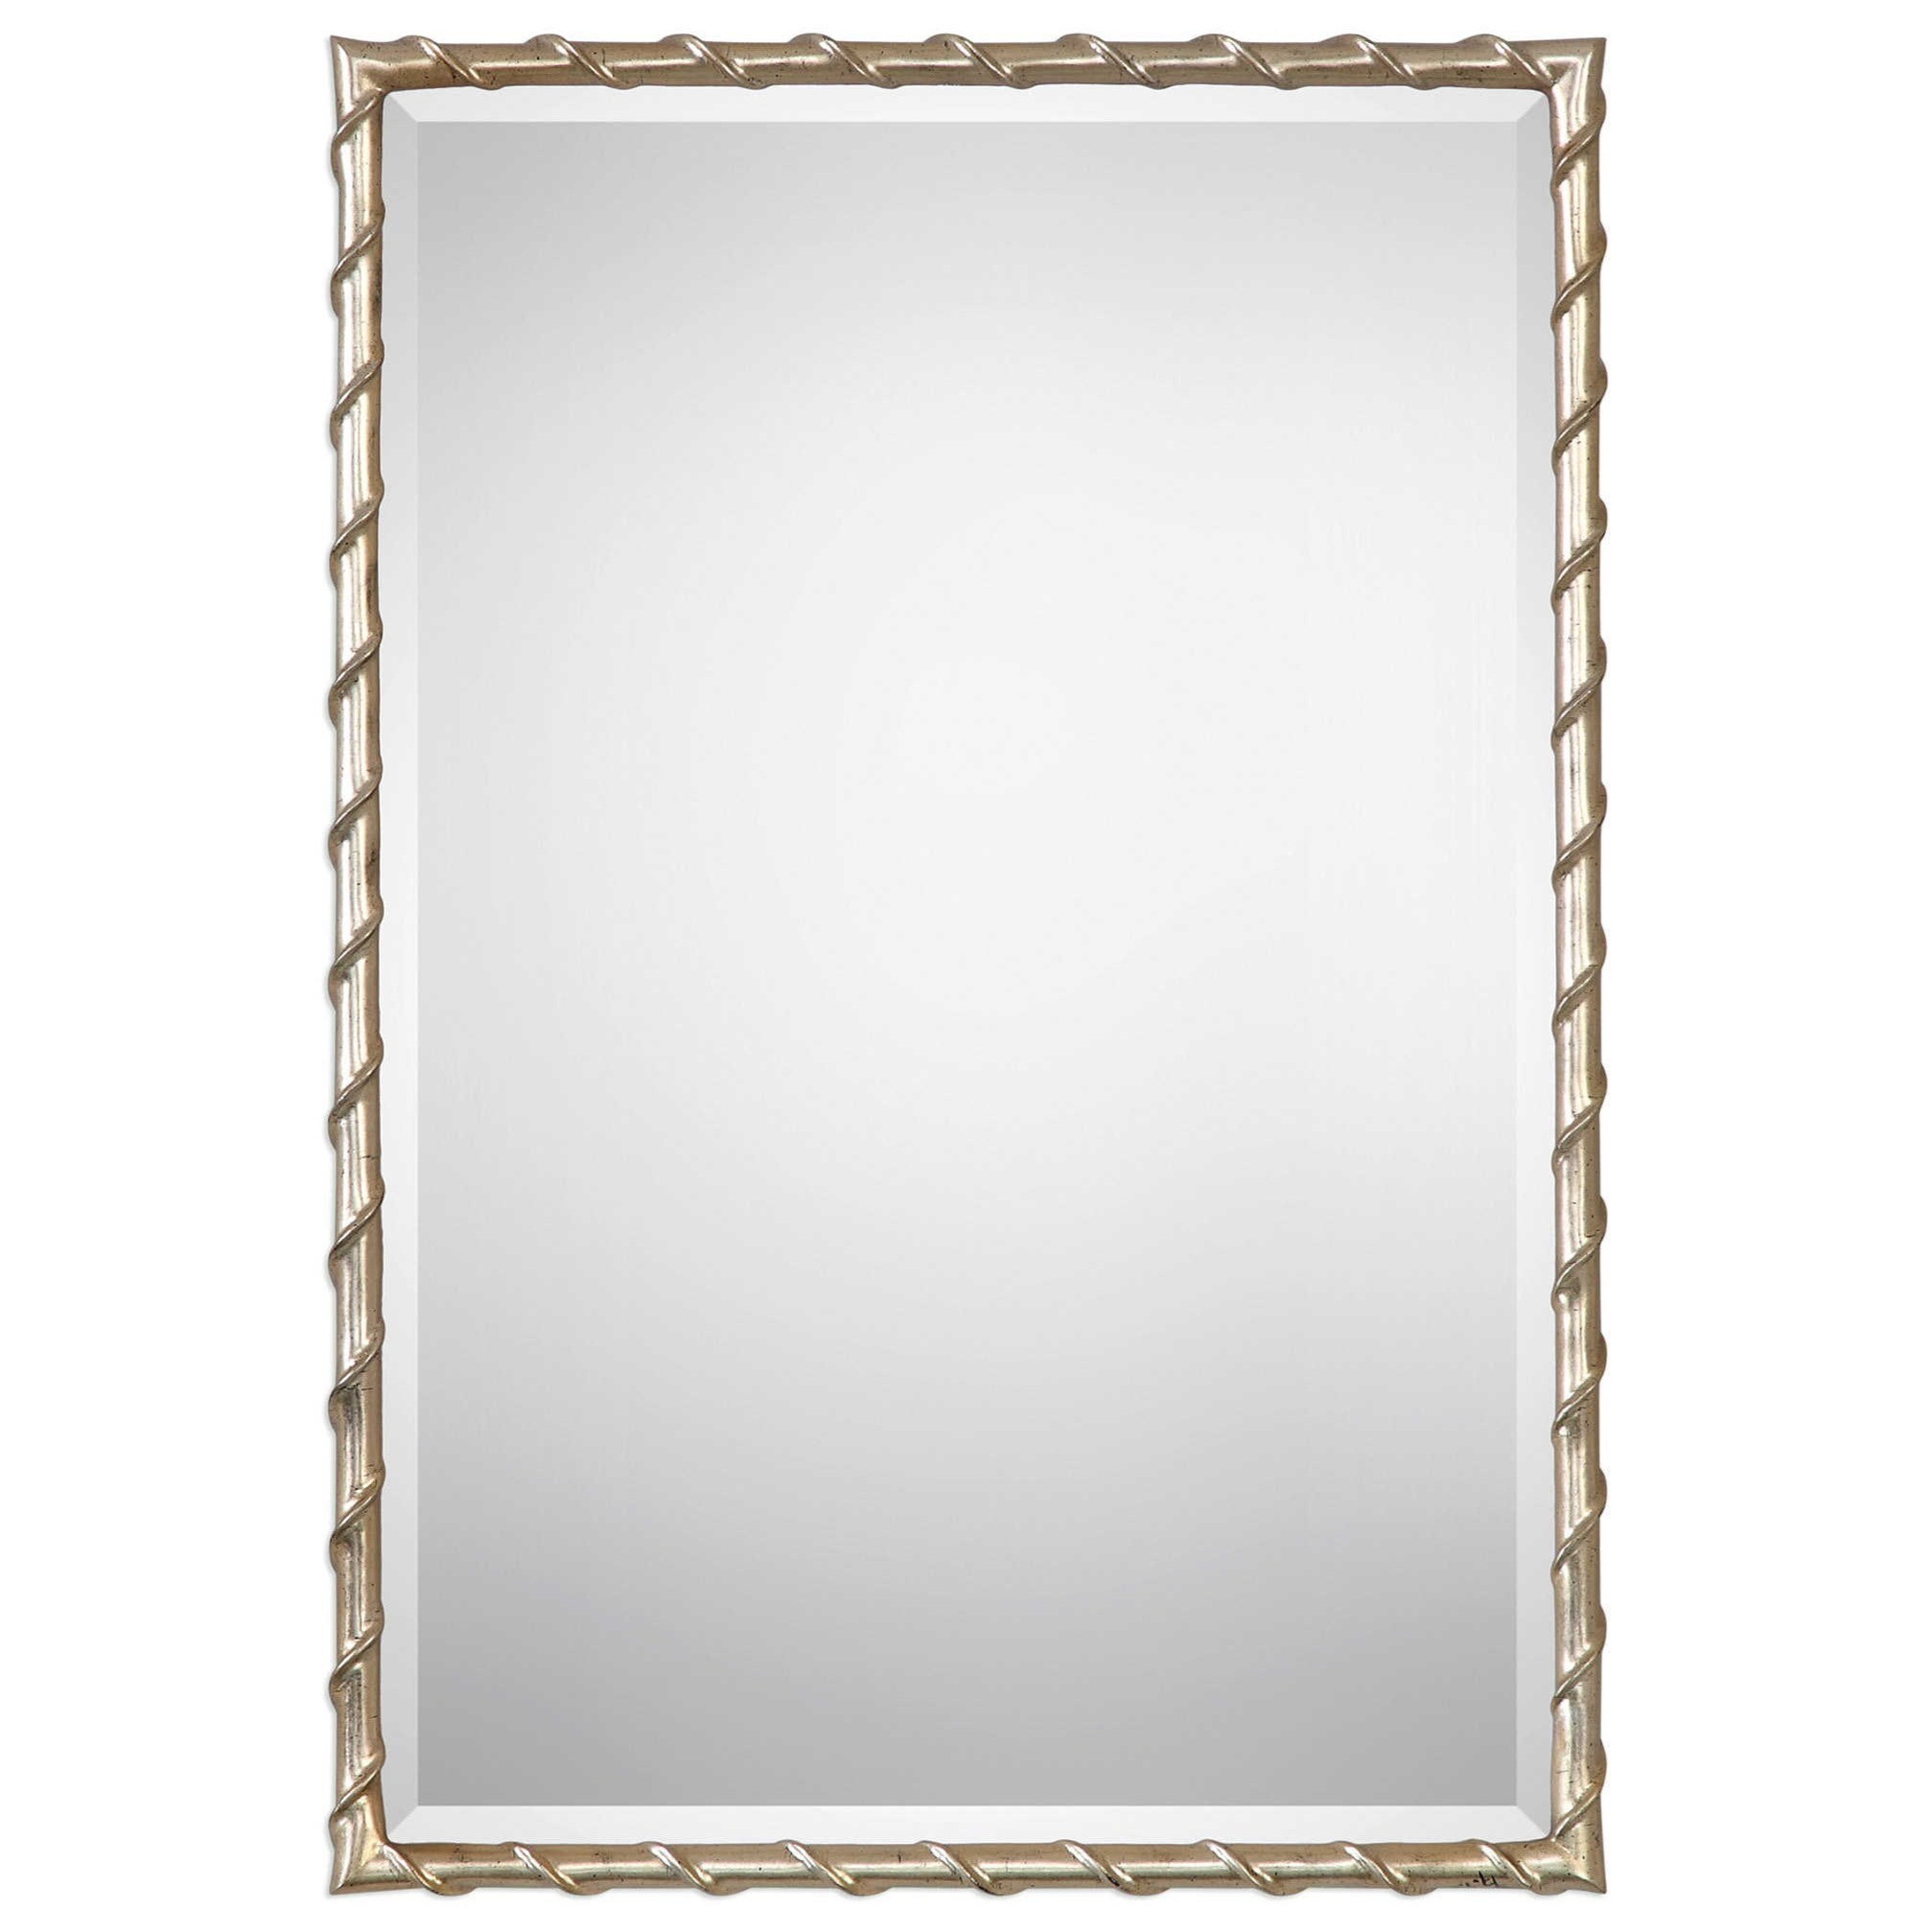 Uttermost Mirrors Laden Silver Mirror | Miskelly Furniture | Wall Mirrors